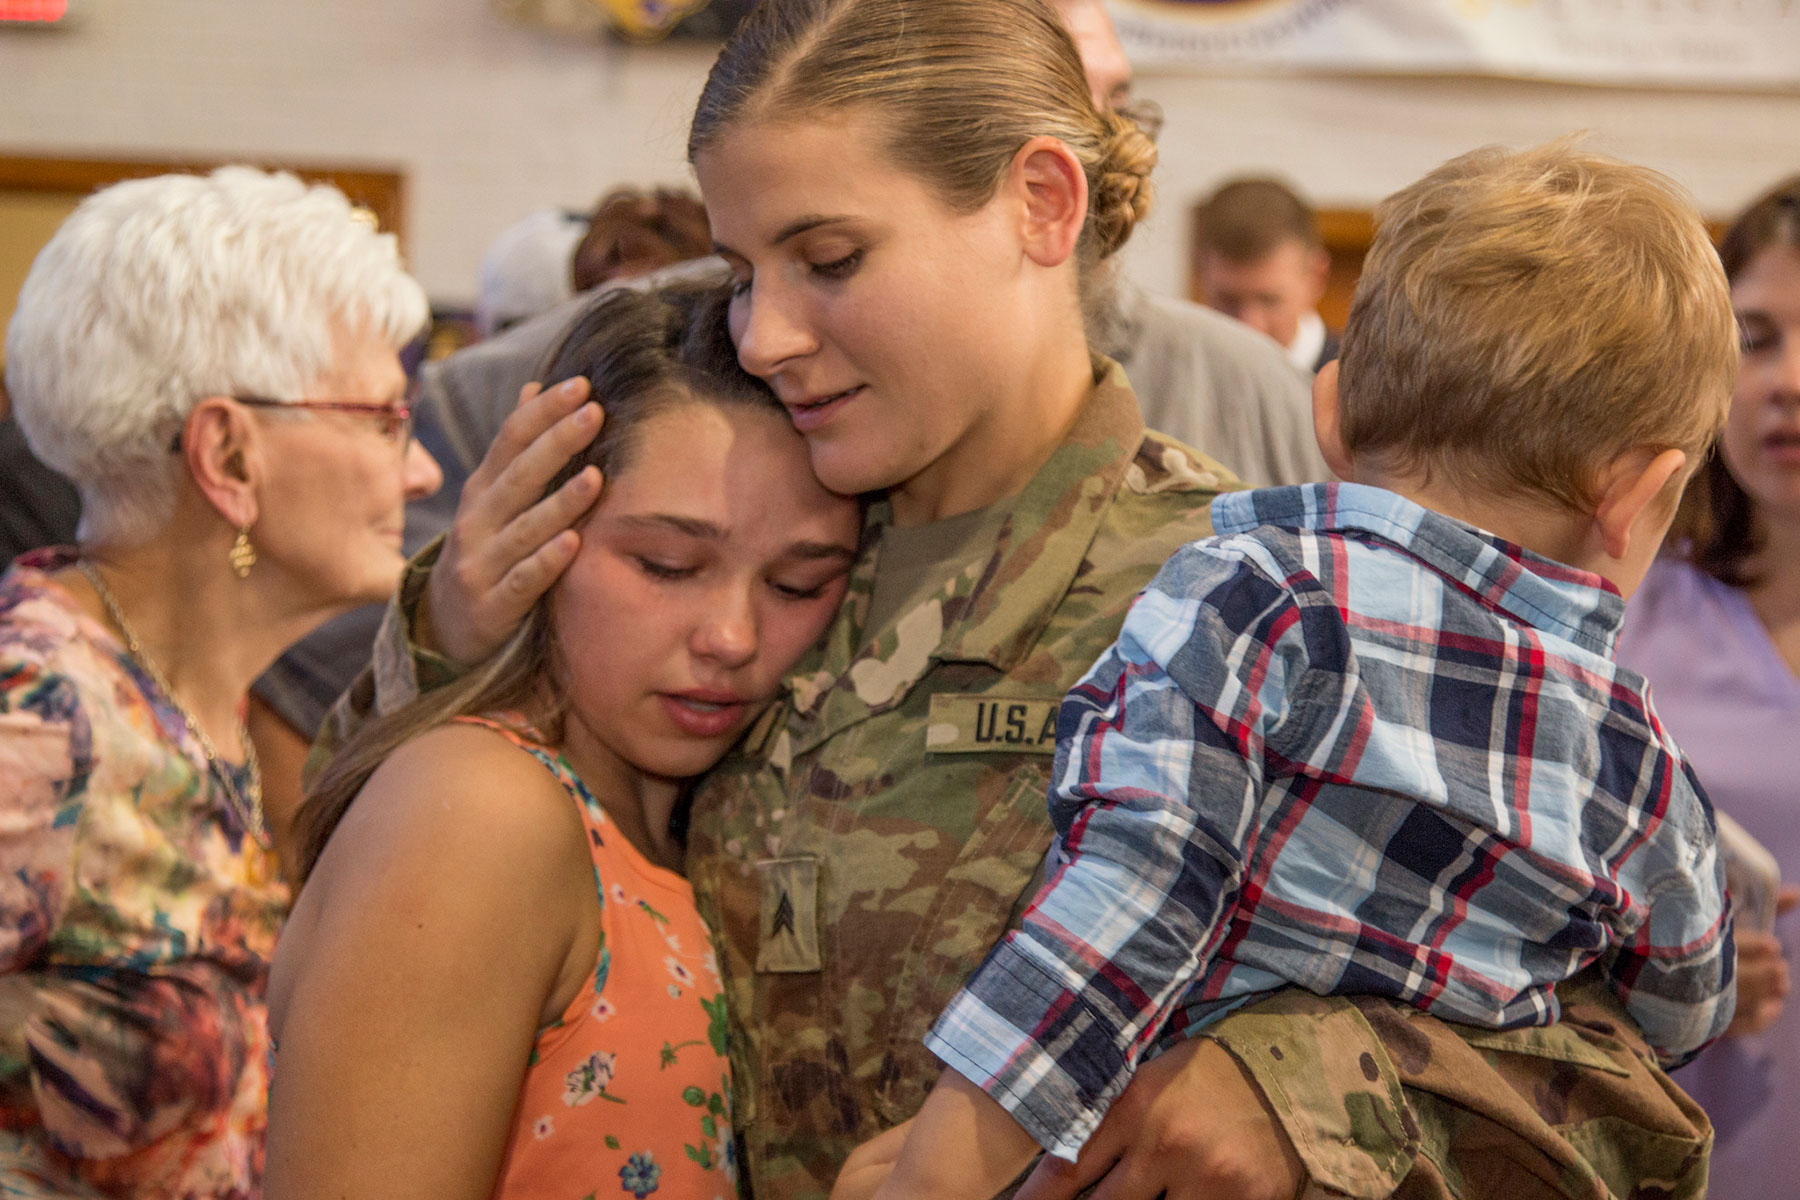 Sgt. Allison Catic, Company A, 248th Aviation Support Battalion, 67th Troop Command, Iowa Army National Guard, embraces her children following the unit's send-off ceremony at Cedar Falls, Iowa, on Sept. 29, 2017. (U.S. Army National Guard/Tawny Schmit)